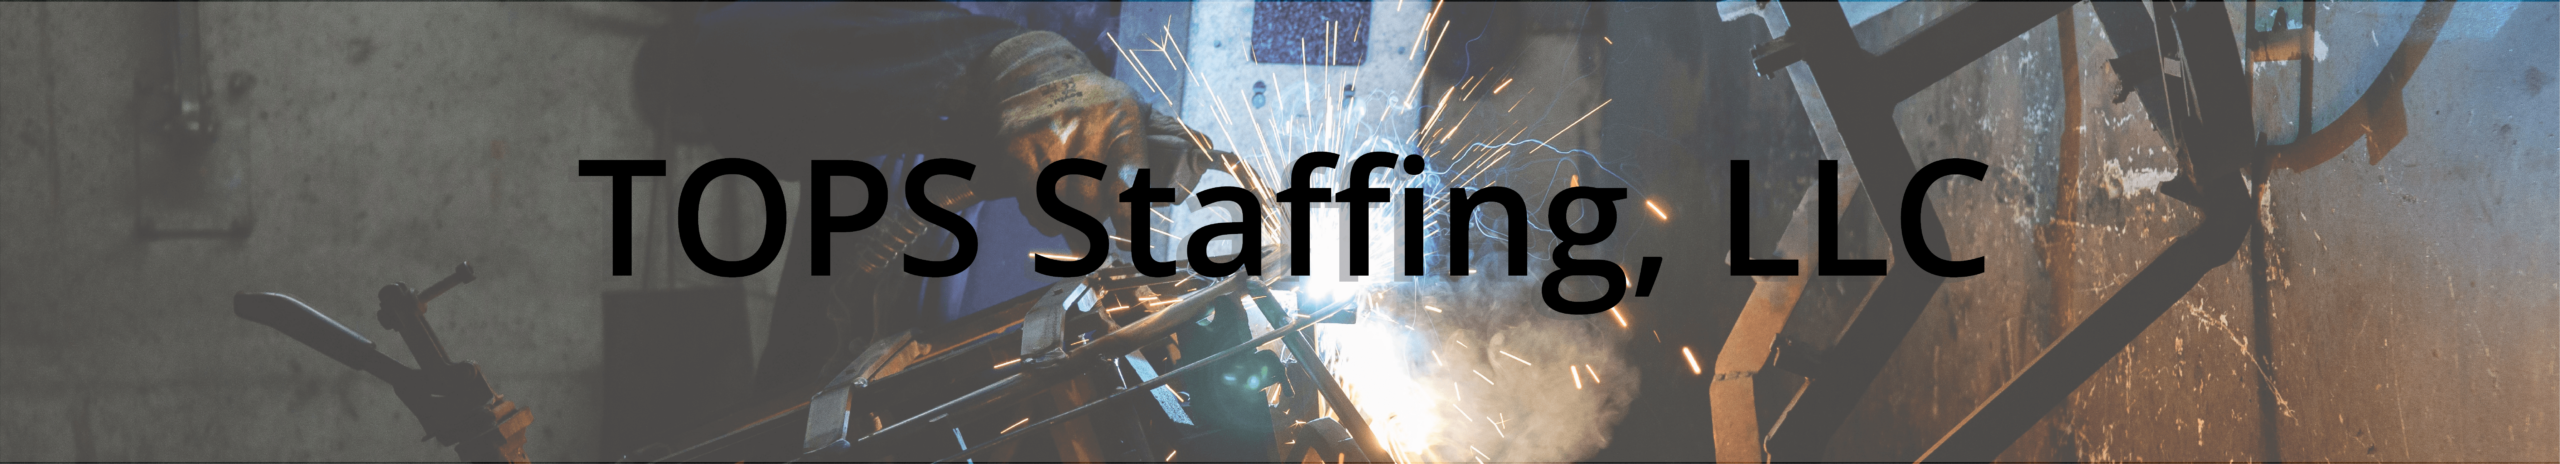 TOPS Staffing, LLC Header - Image of a Light Industrial Welder with the words TOPS Staffing, LLC overlaid on top.